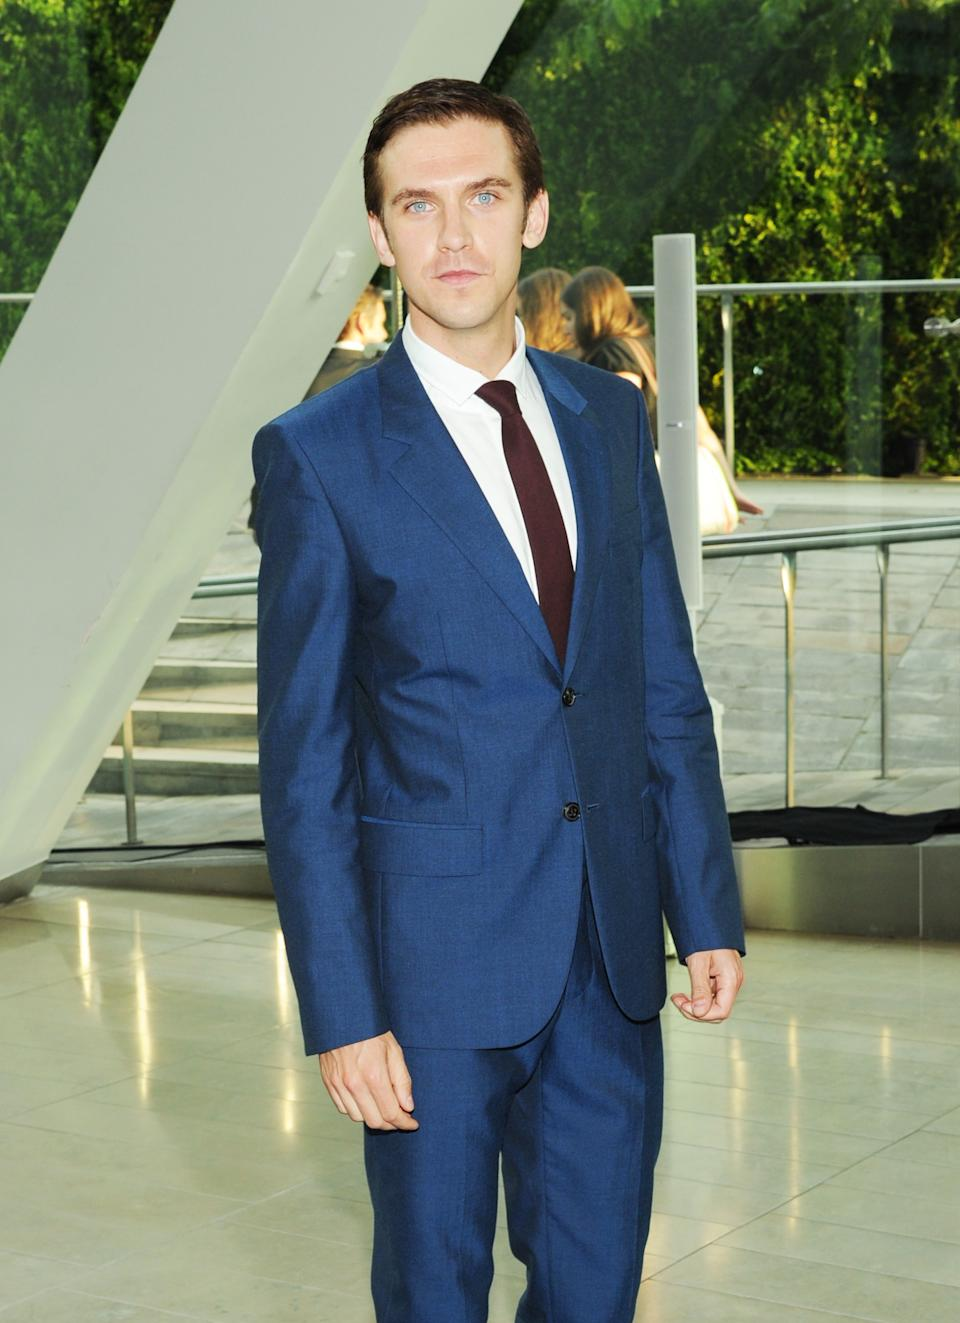 Actor Dan Stevens attends the 2013 CFDA Fashion Awards at Alice Tully Hall on Monday, June 3, 2013 in New York. (Photo by Evan Agostini/Invision/AP)